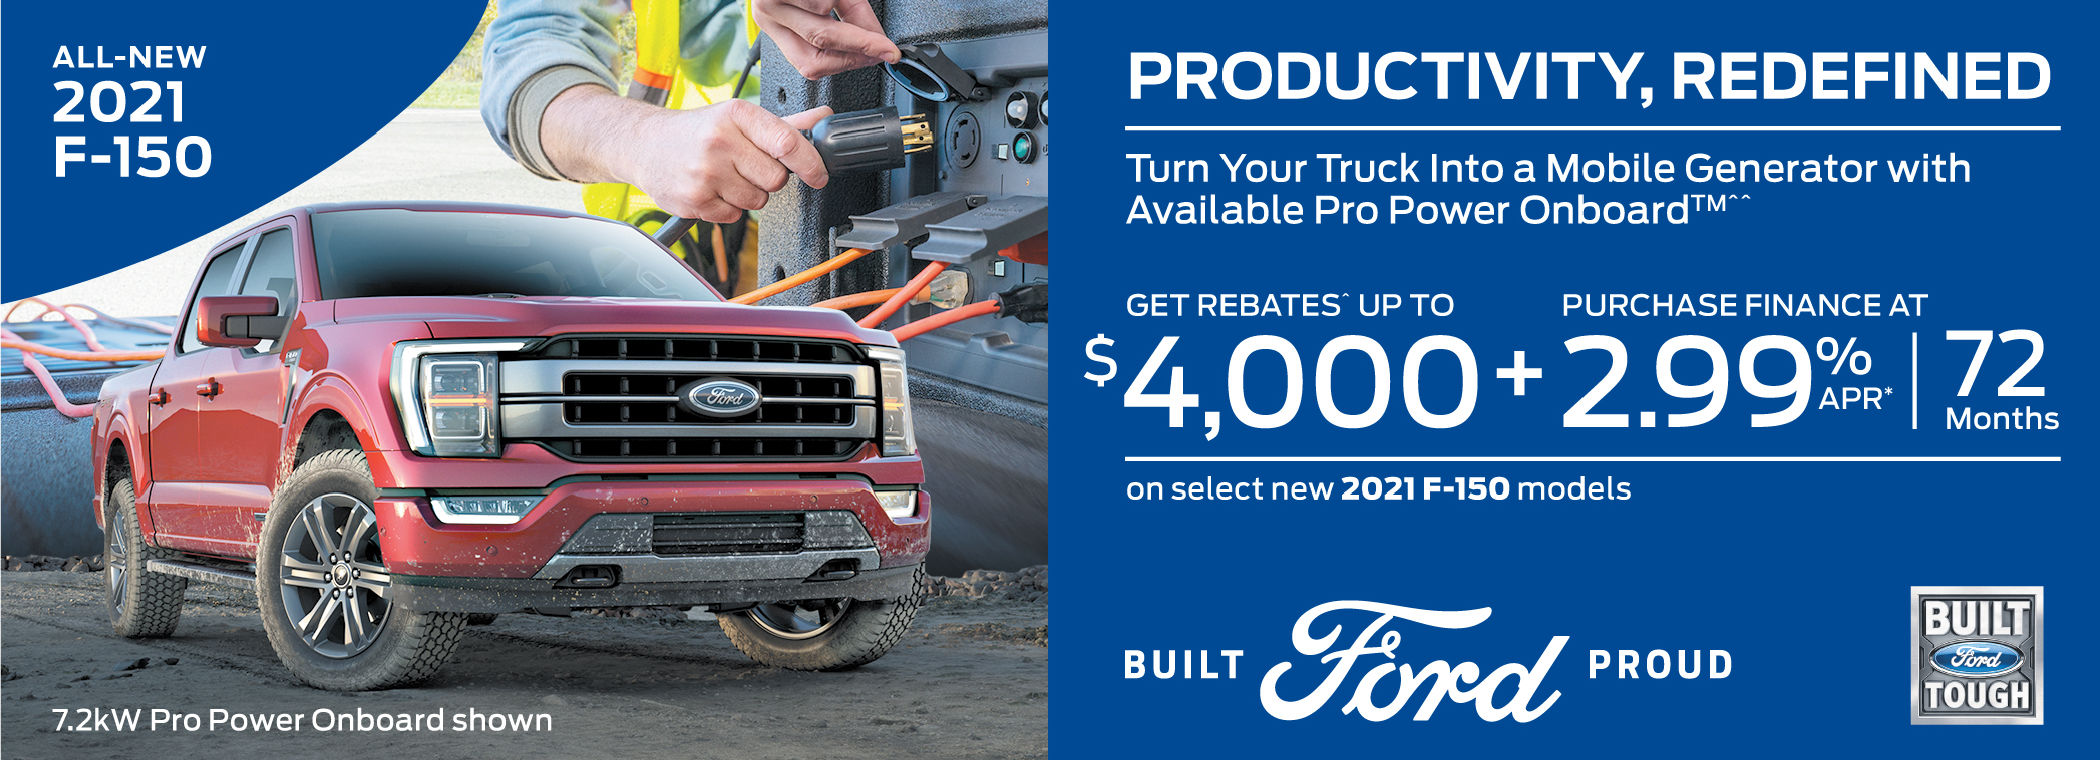 Ford F-150 Special Offers